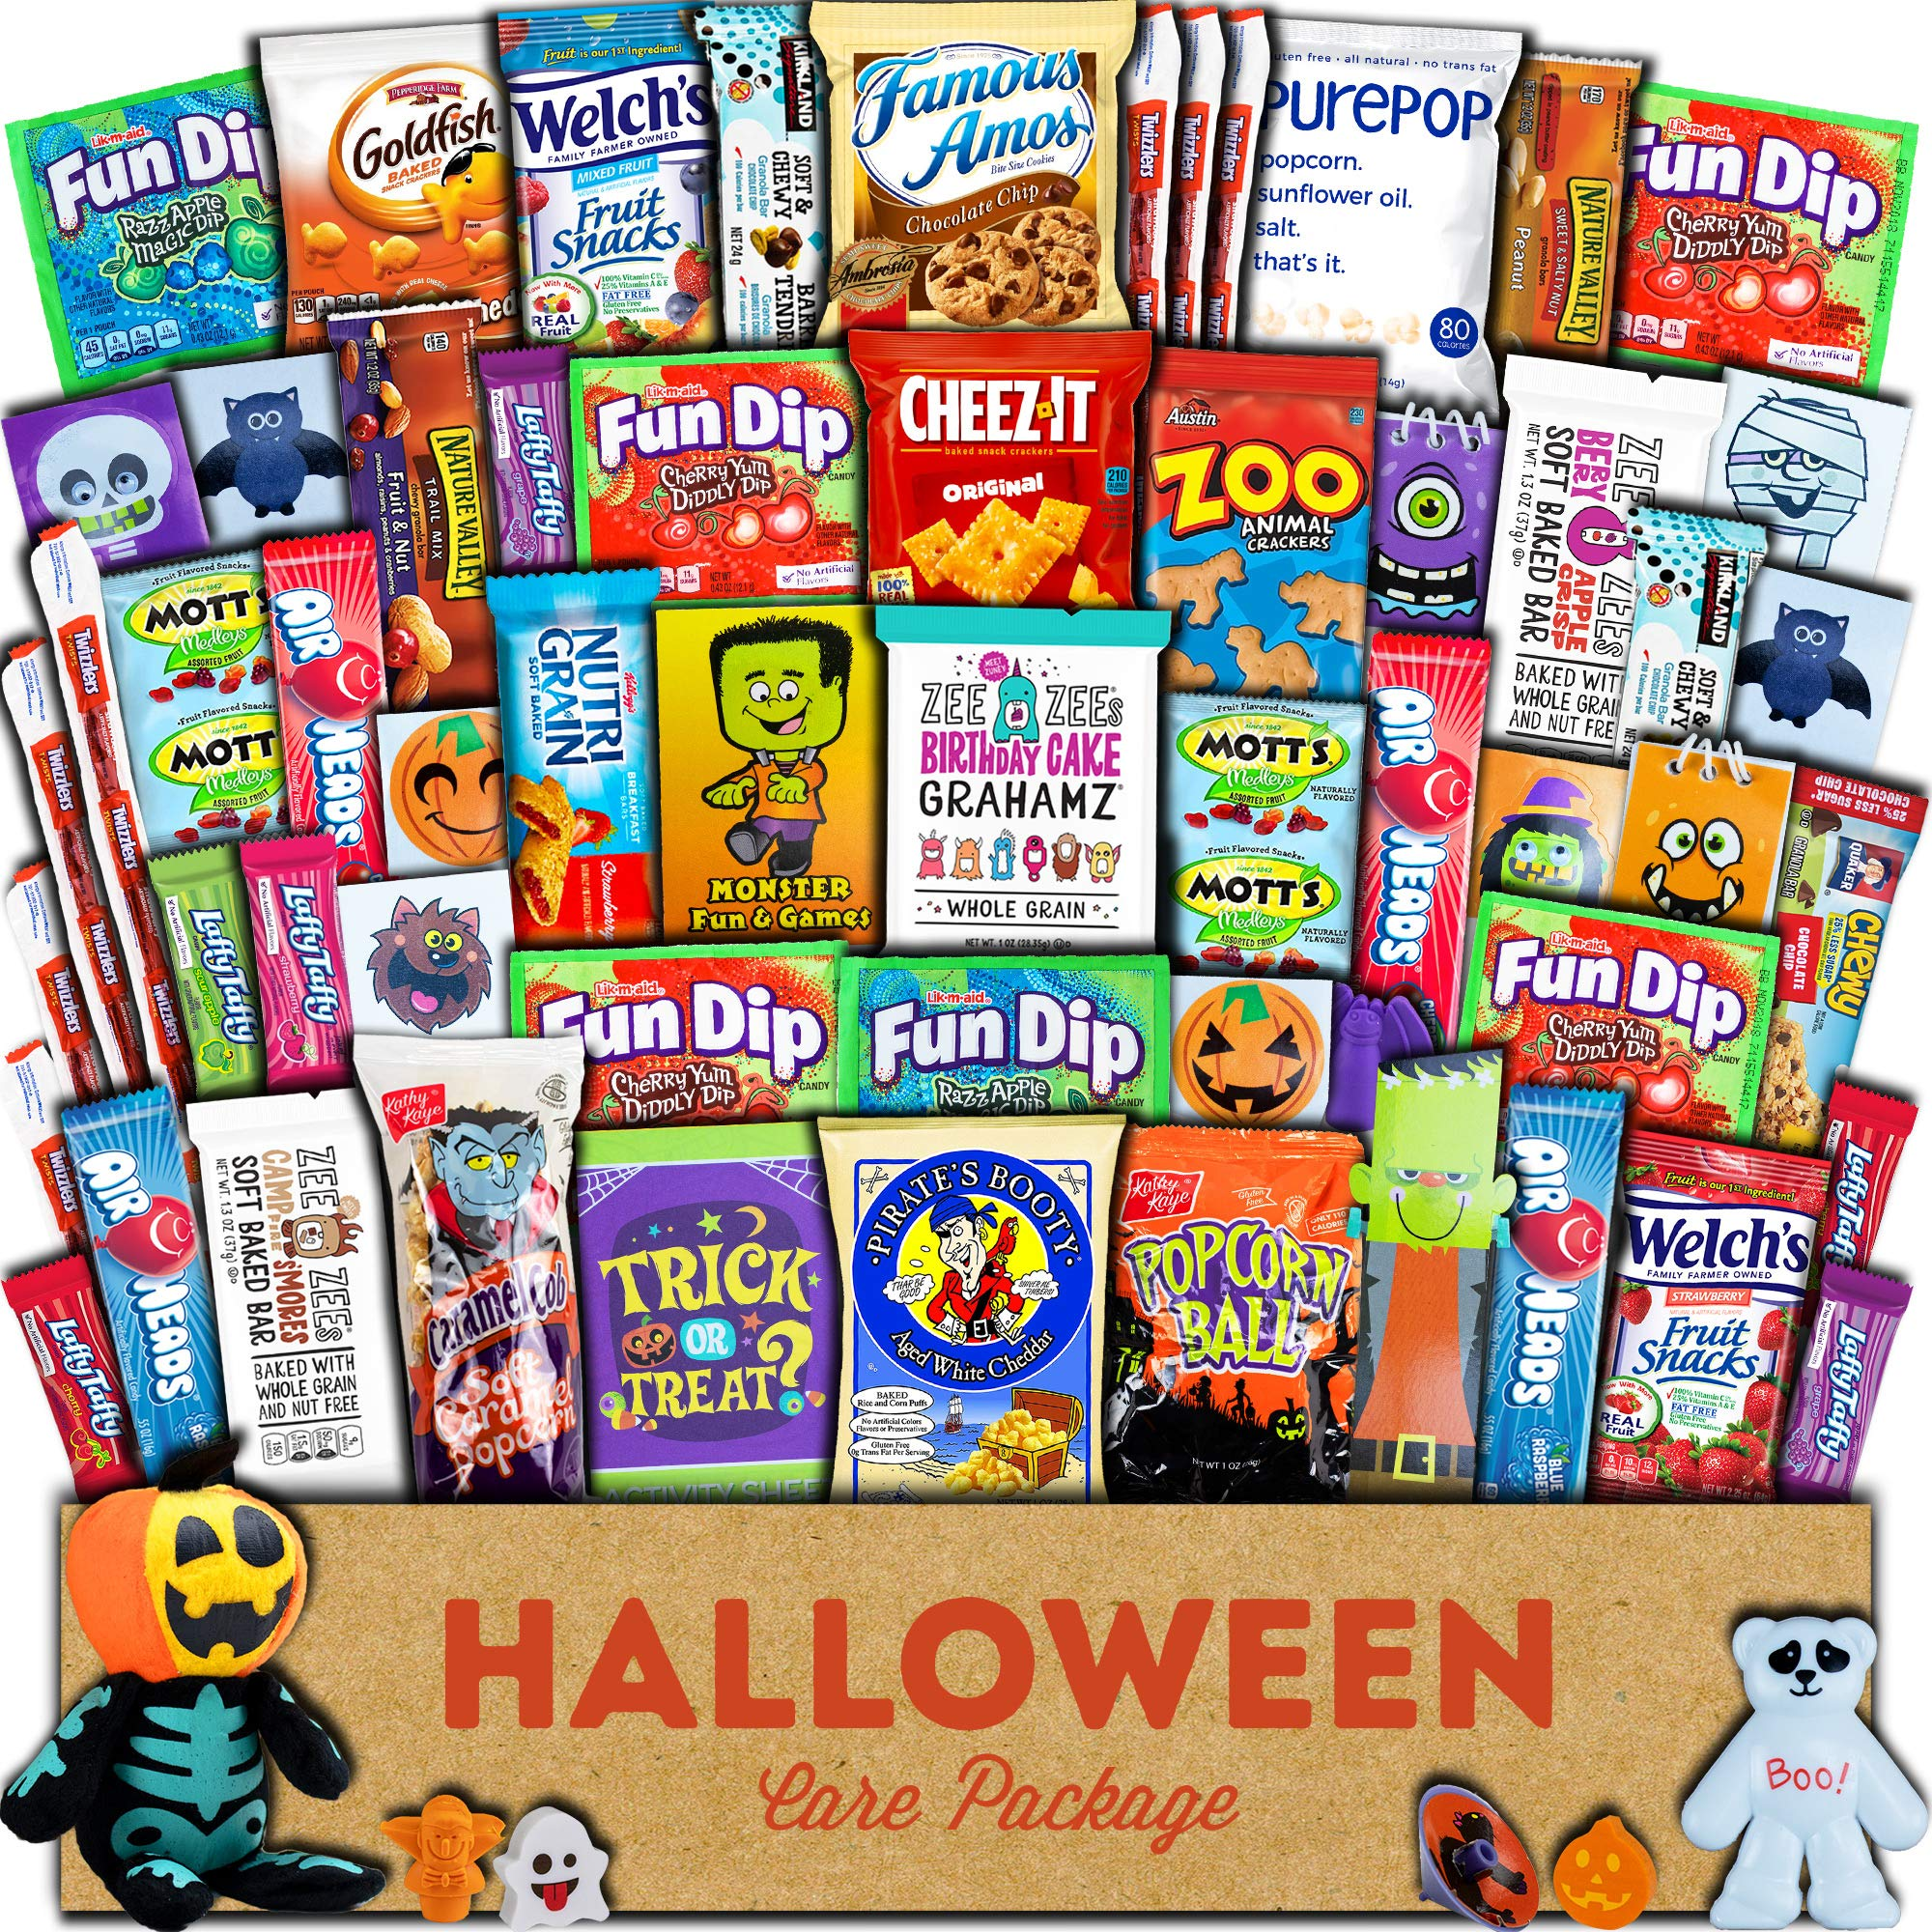 Halloween Care Package (60ct) Trick or Treat Snacks Cookies Bars Chips Candy Toys Variety Gift Box Pack Assortment Basket Bundle Mixed Bulk Sampler Treats College Students Office by Heart & Holly